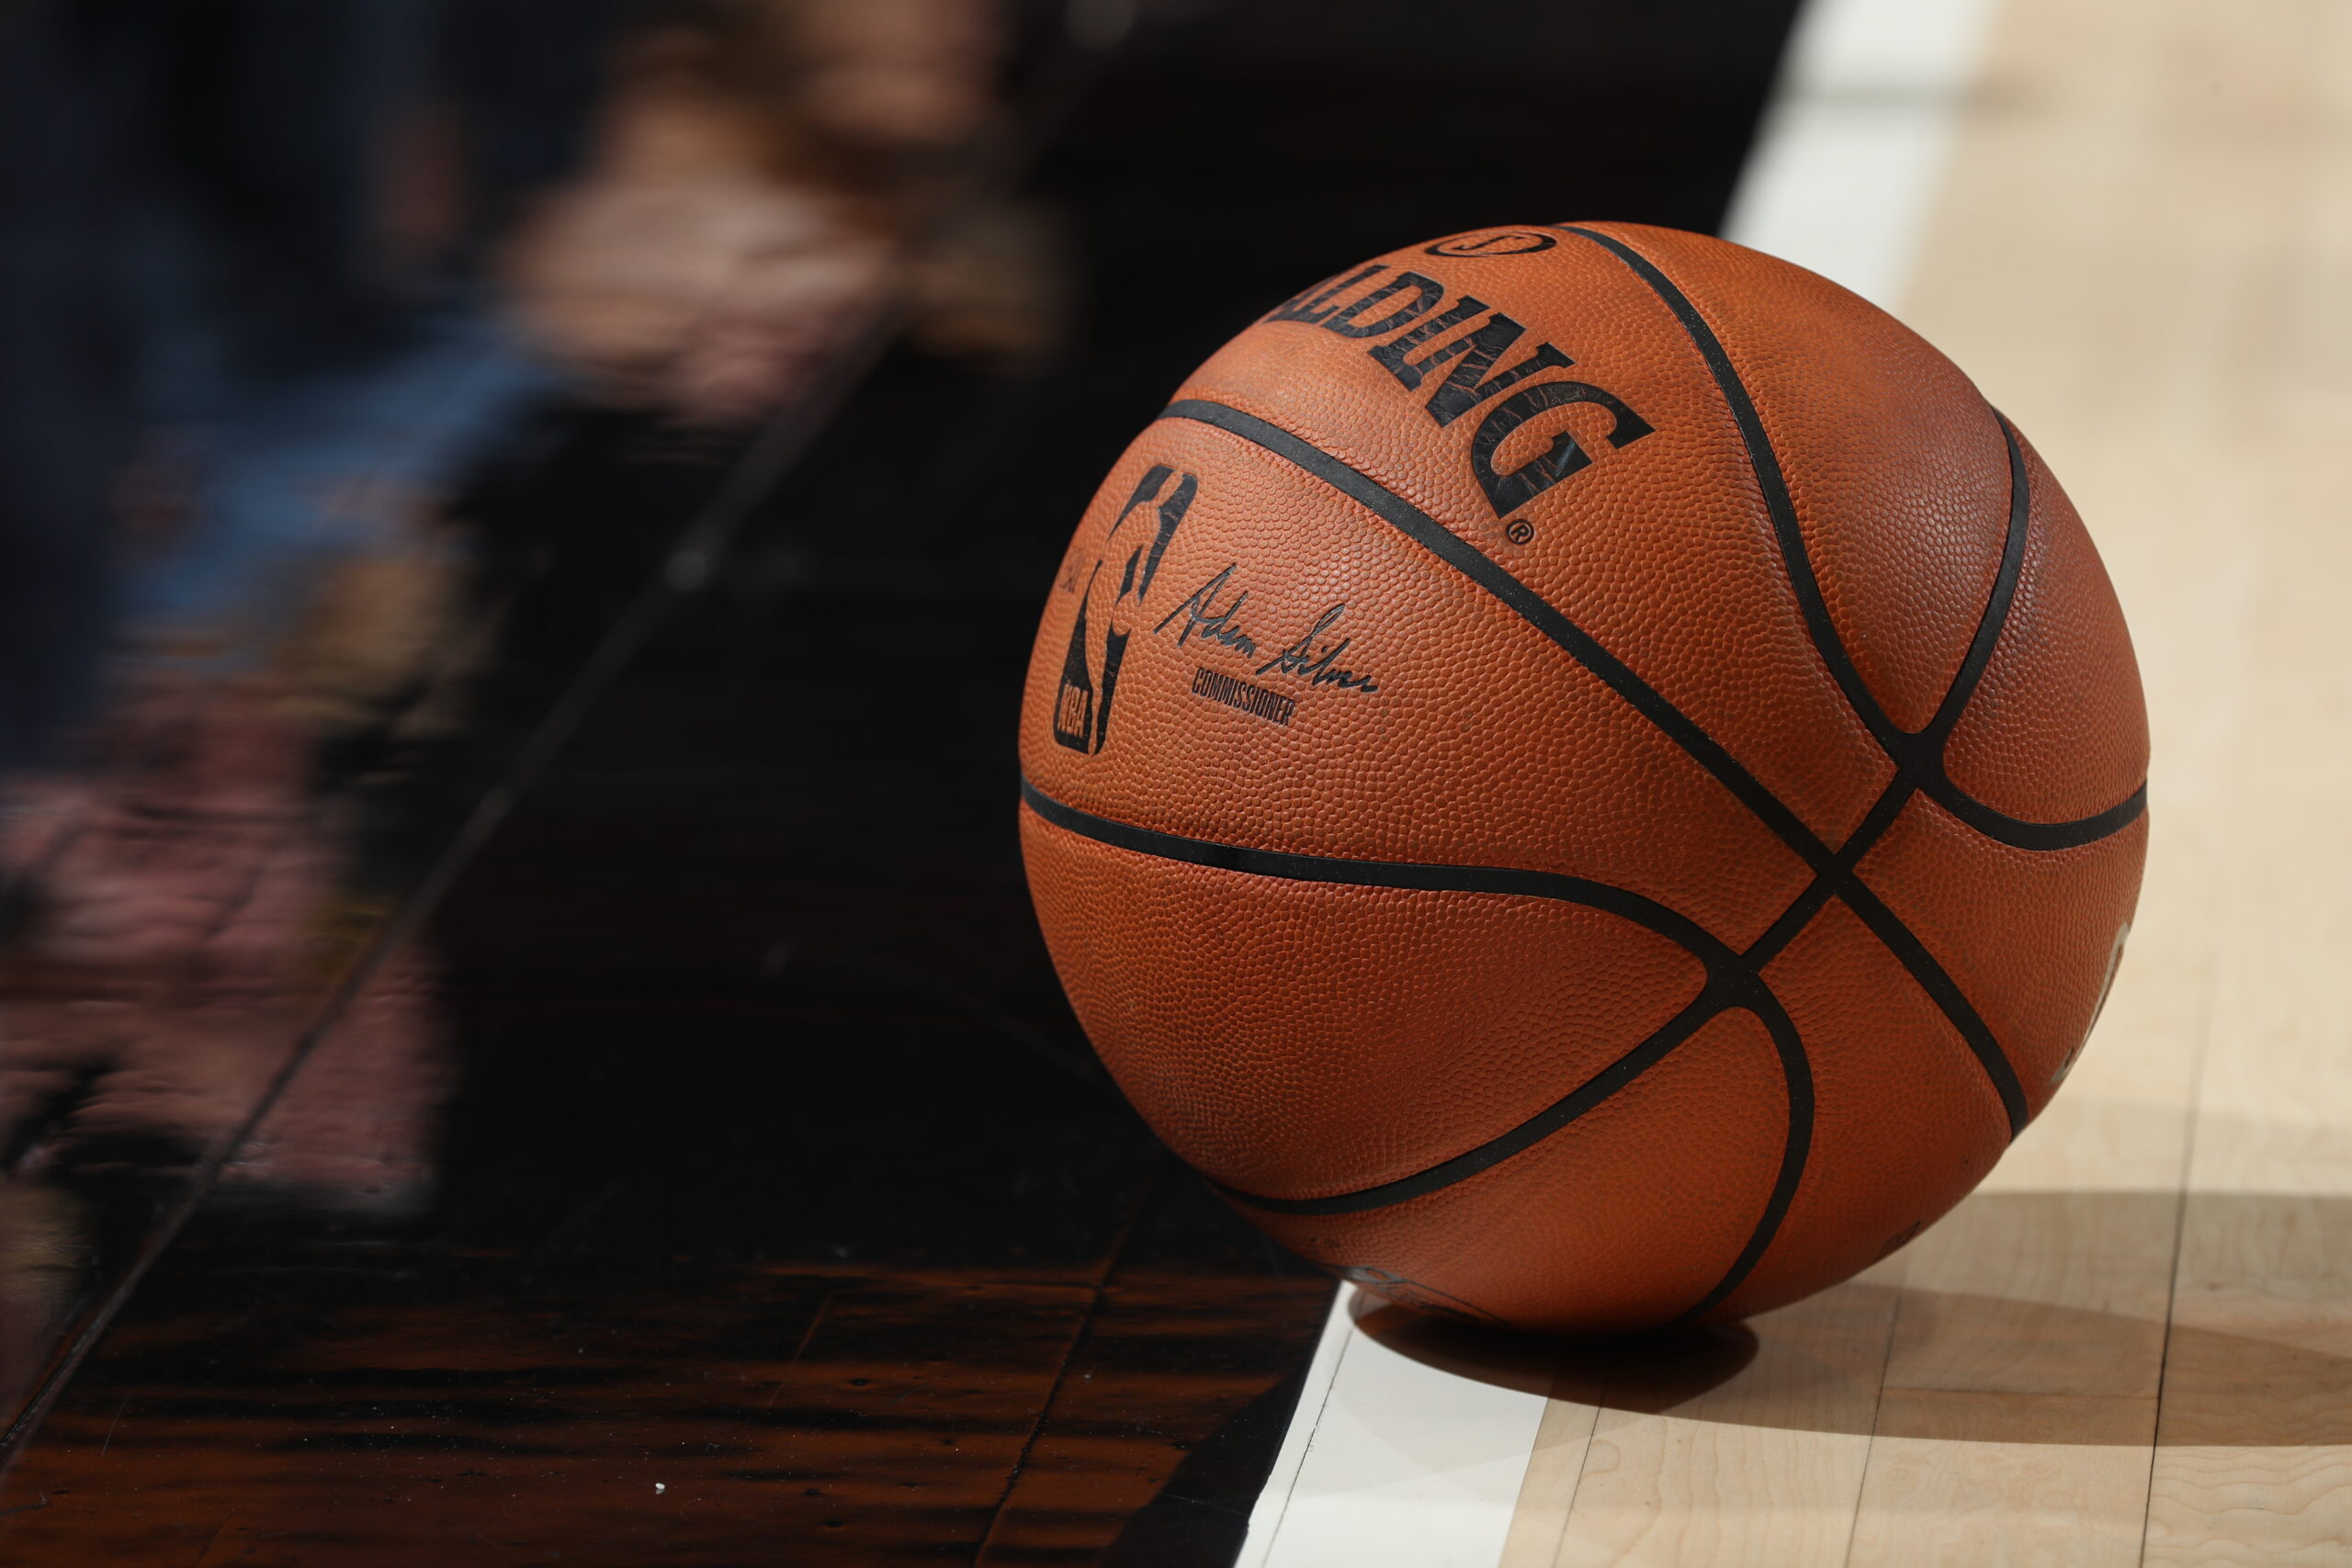 Bulls-Grizzlies game postponed for Health and Safety Protocols